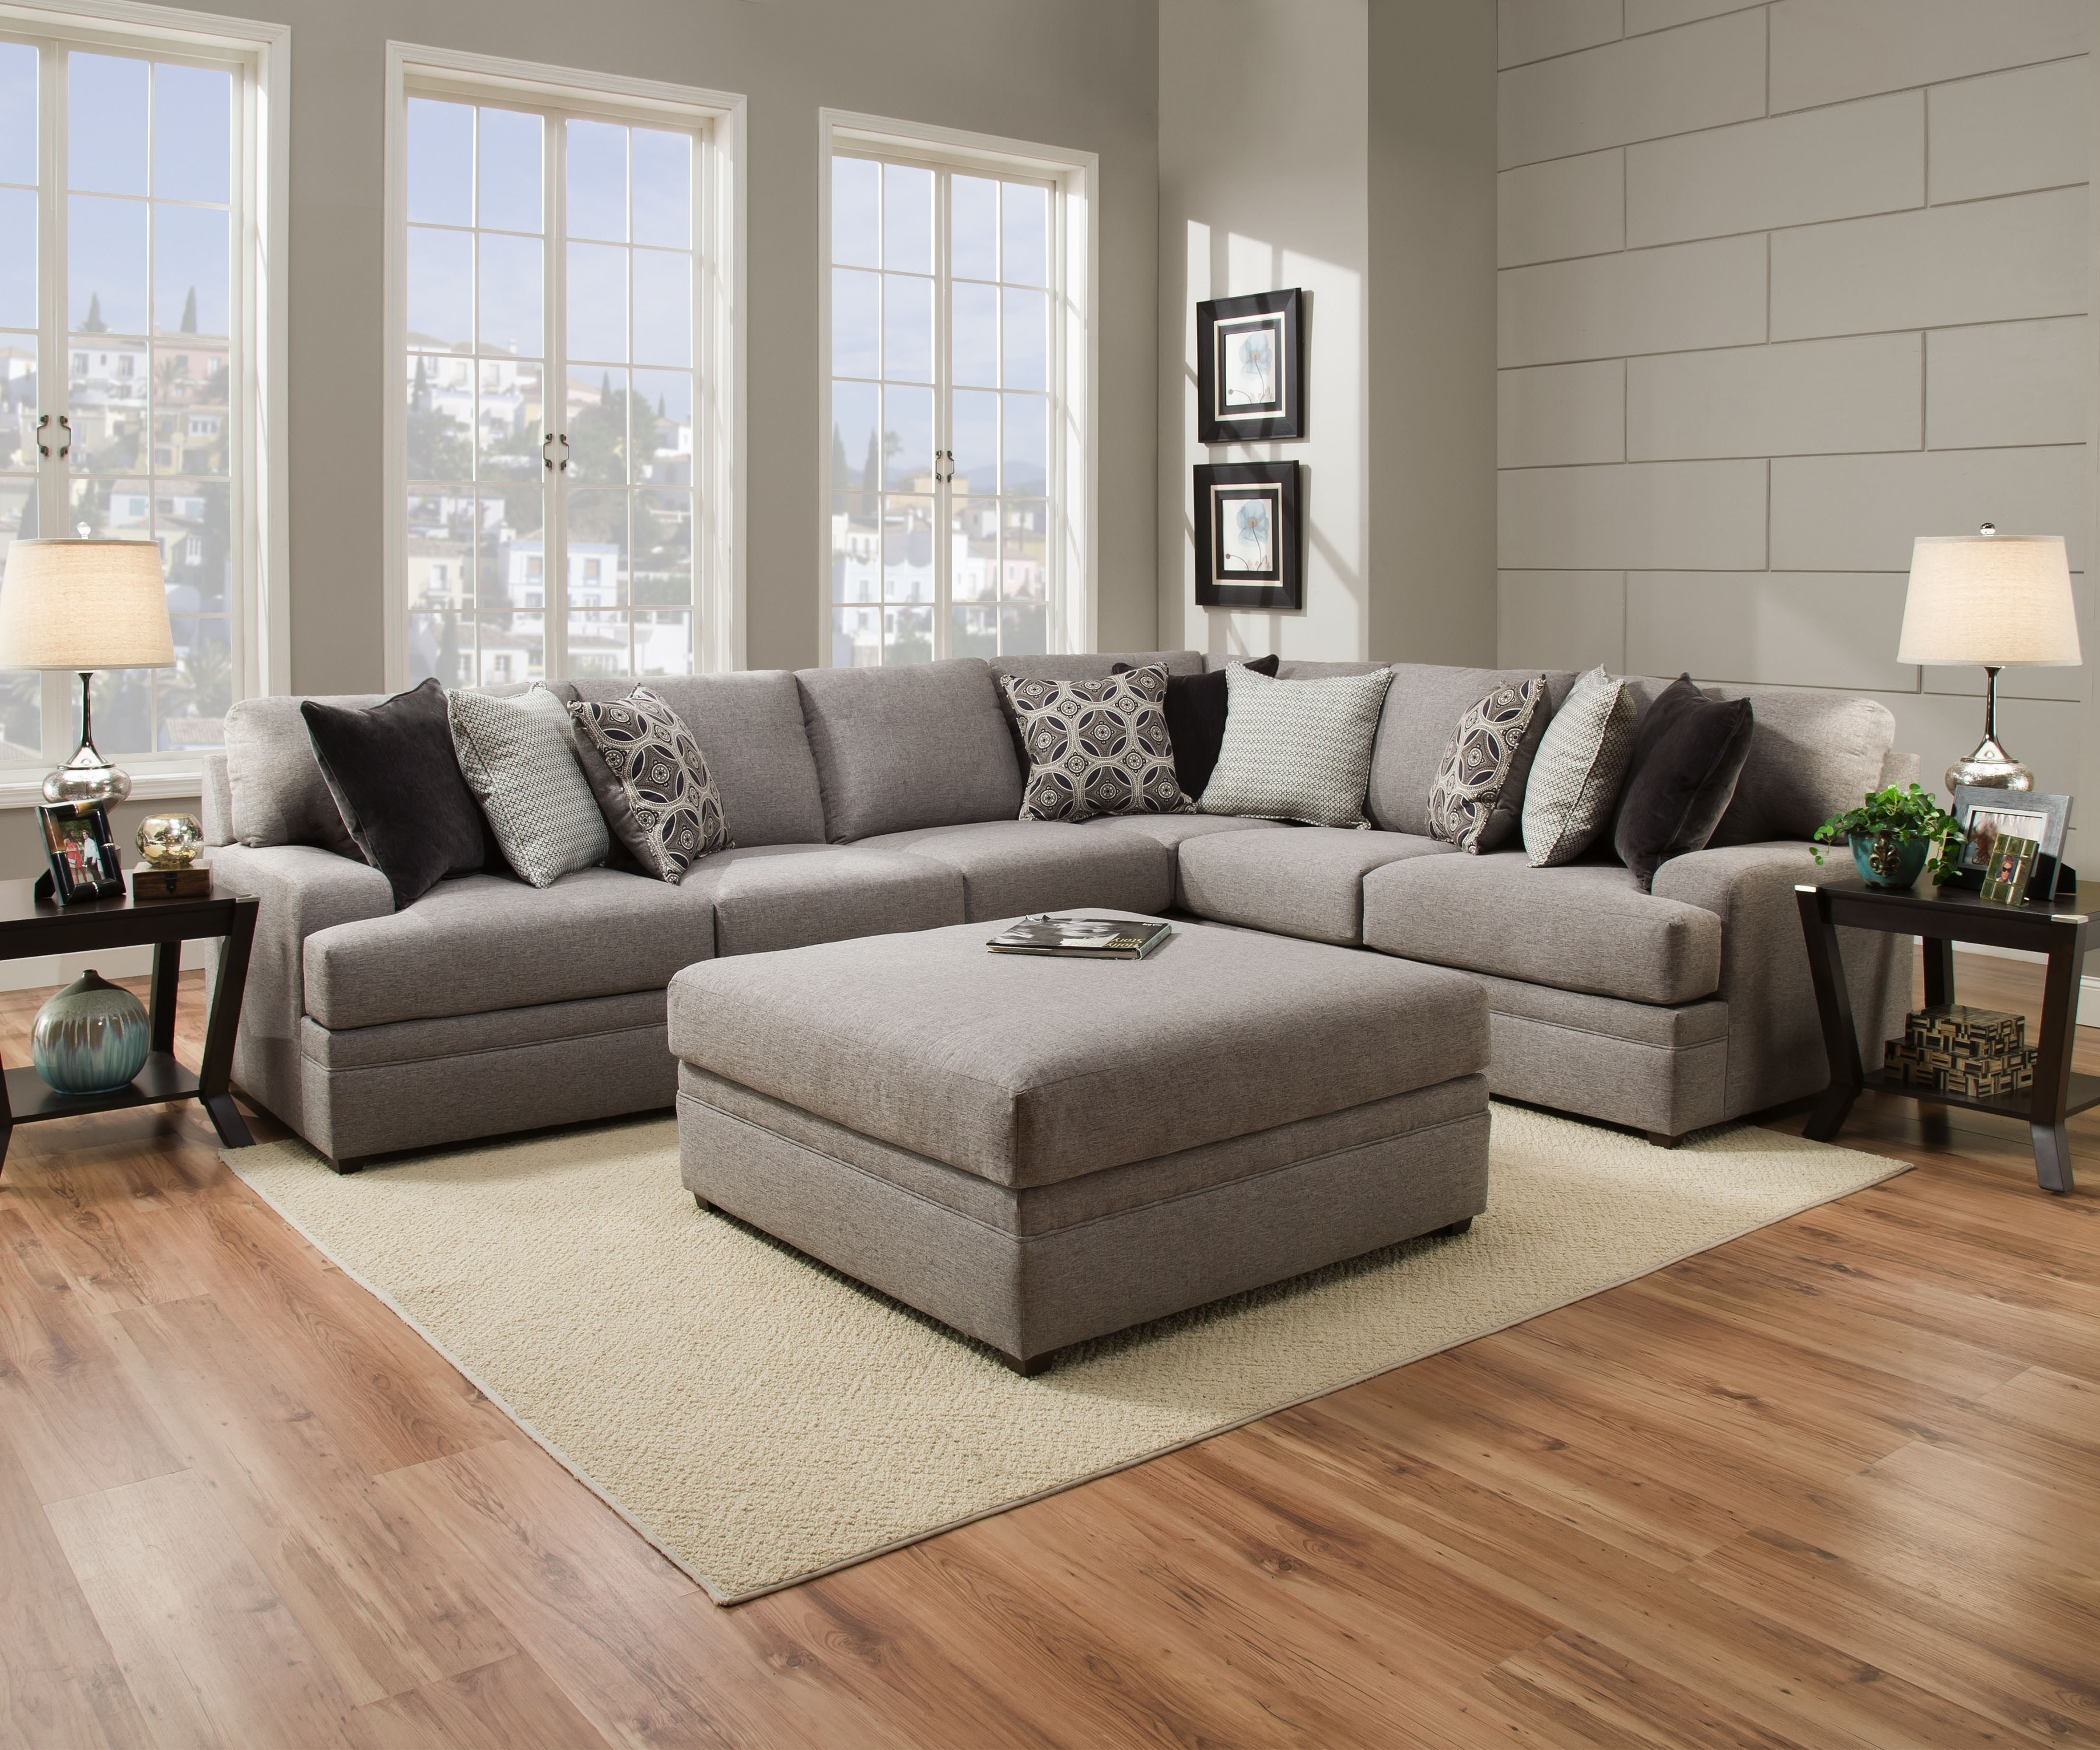 Sears Burton Sectional Sofa • Sectional Sofa With Sectional Sofas At Sears (View 7 of 15)